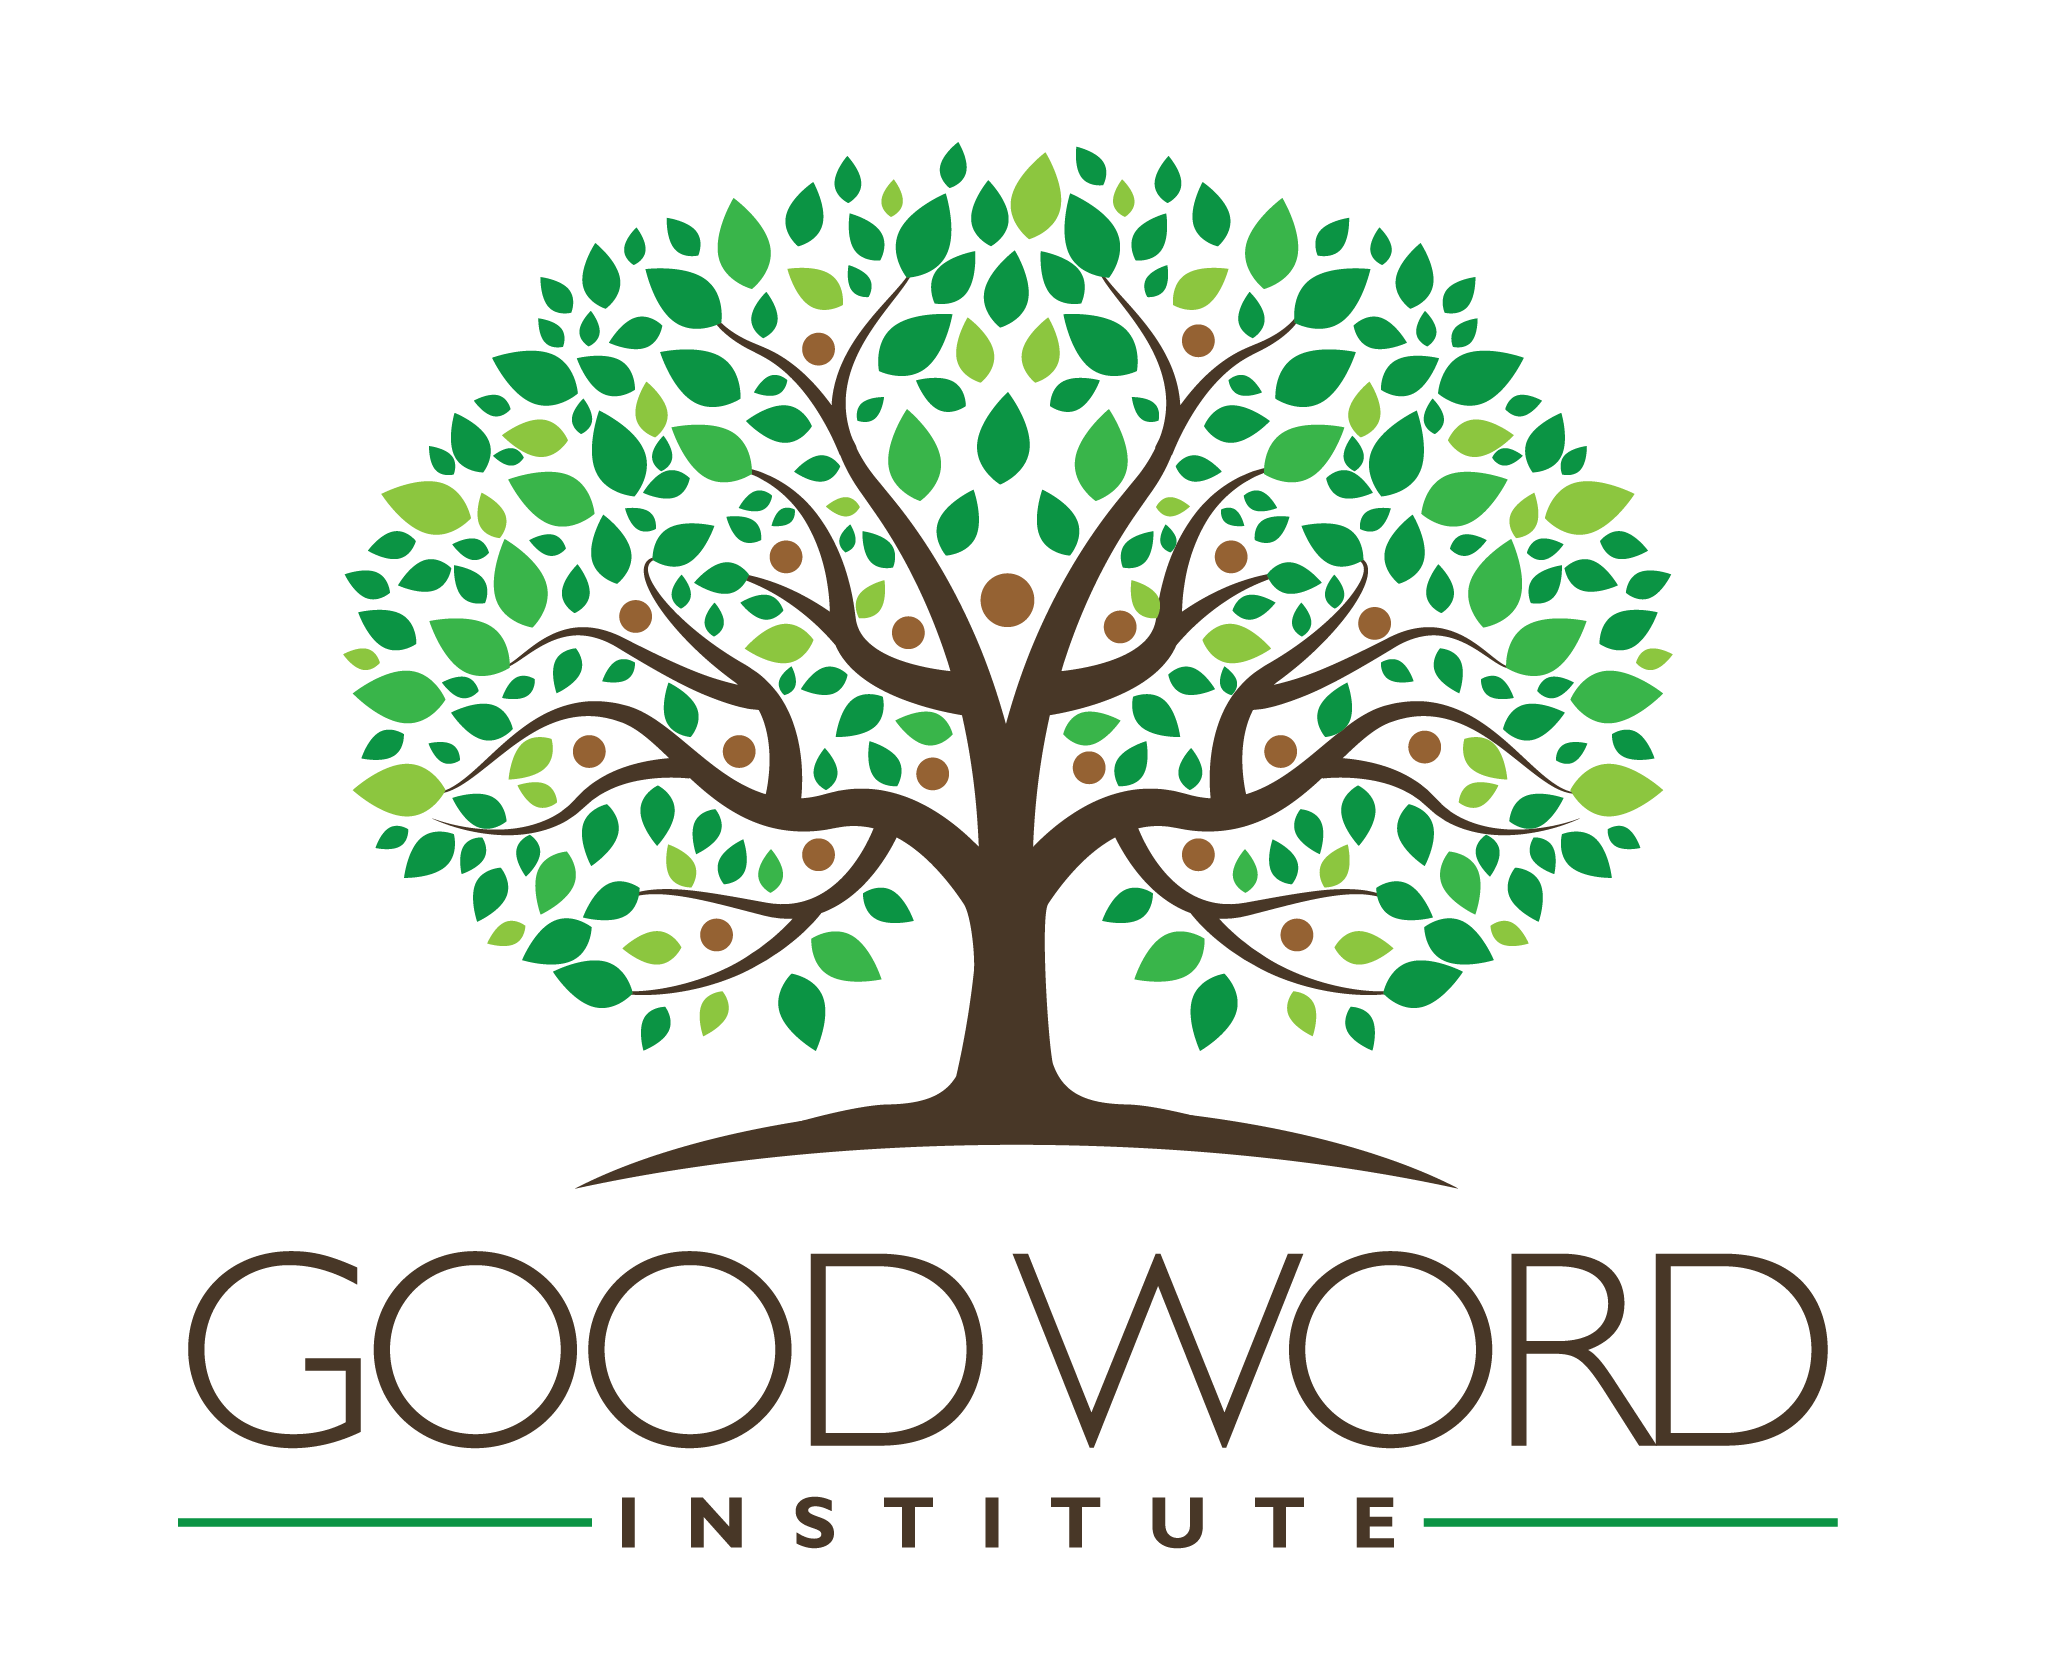 Good Word Institute